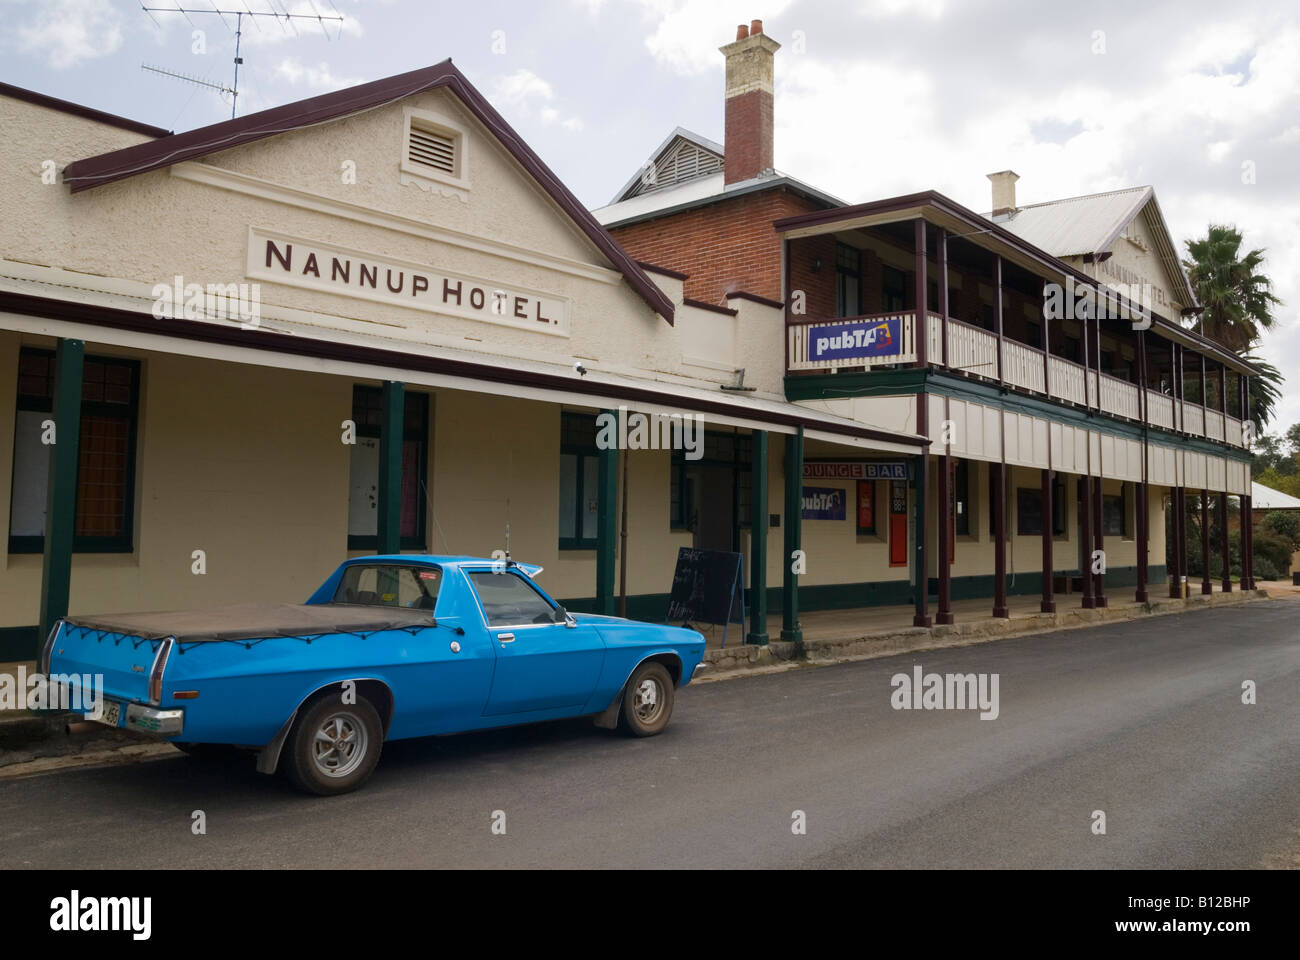 An old blue Holden utility parked outside a traditional country town pub, Nannup, Western Australia - Stock Image